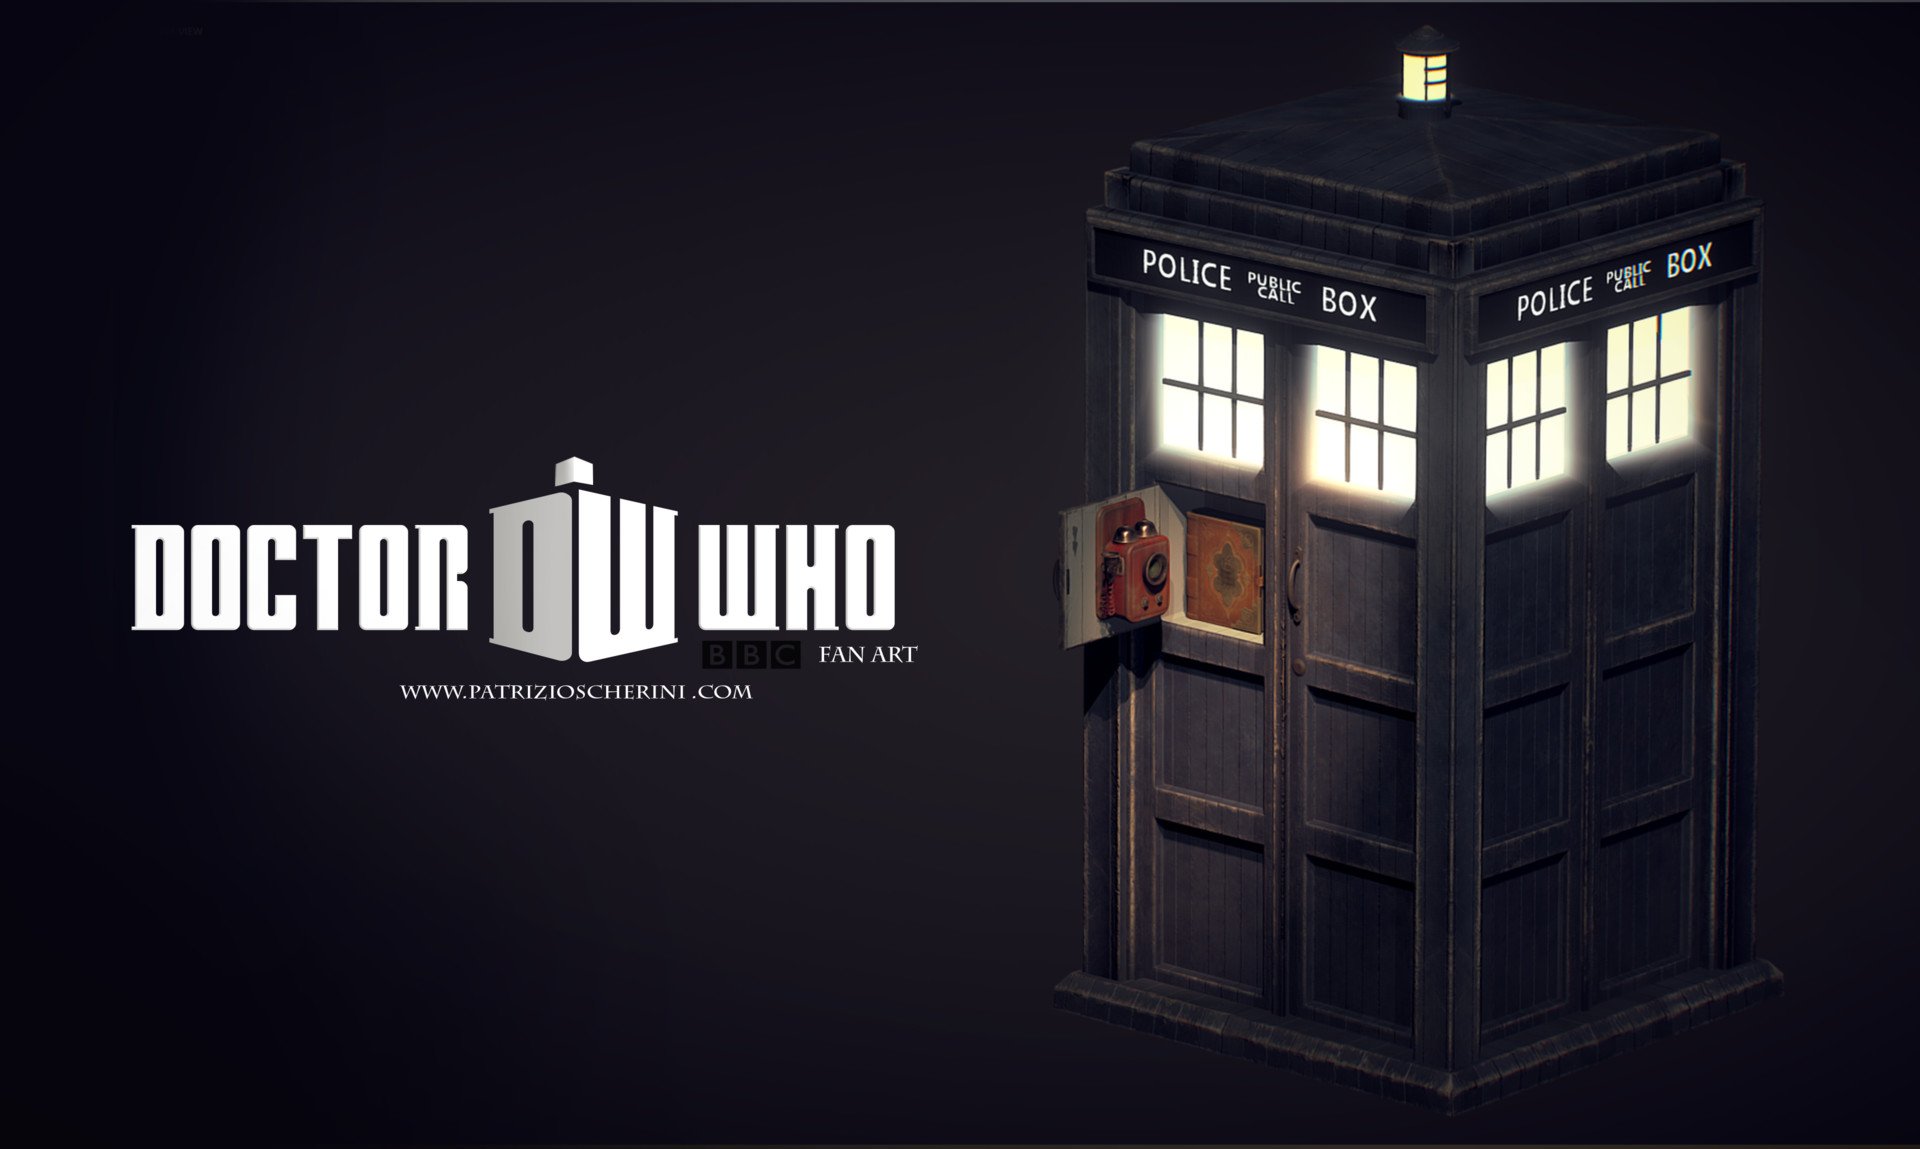 Patrizio scherini patrizioscherini doctorwho beauty 01